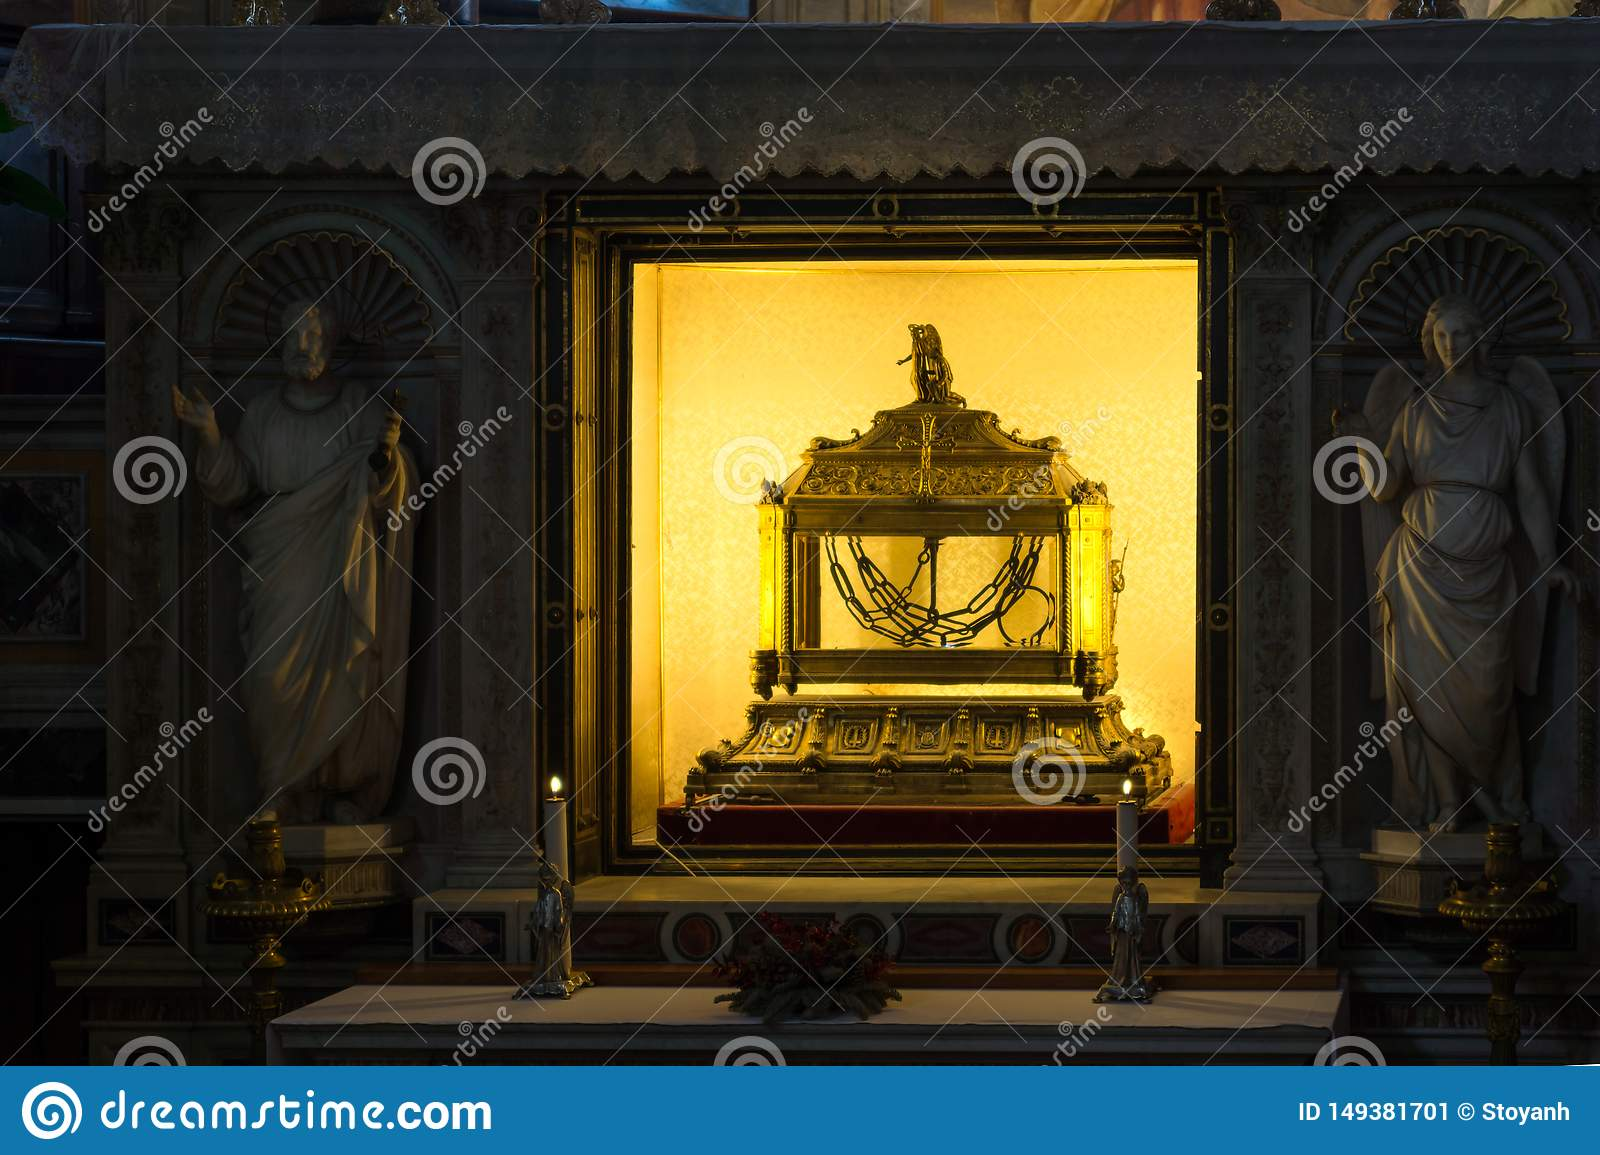 Reliquary containing the chains of St. Peter in church of Saint Peter in Chains San Pietro in Vinc